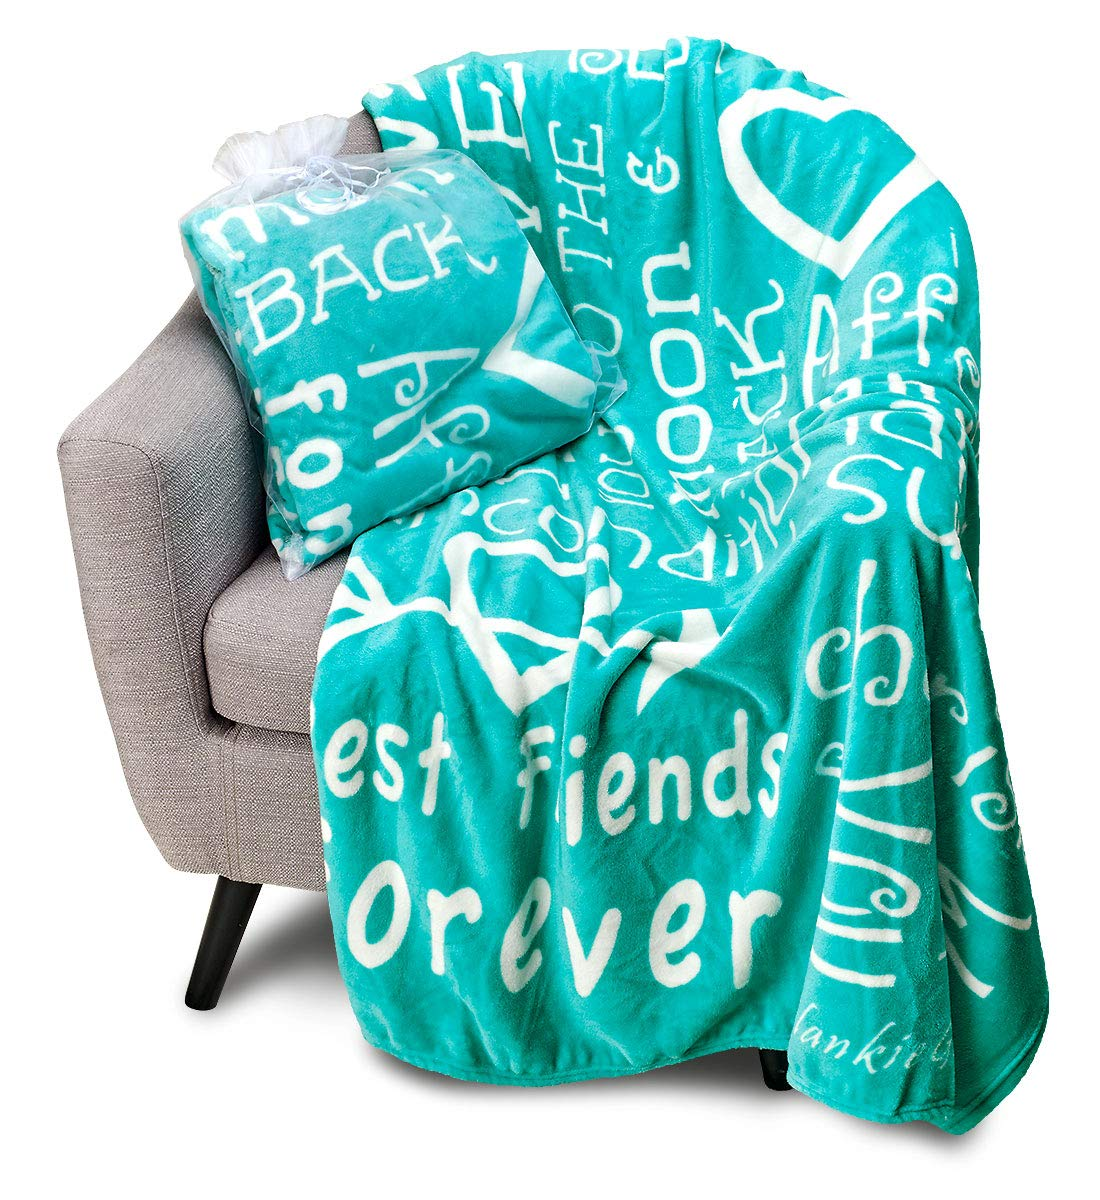 Blankiegram I Love You Throw Blanket The Perfect Caring Gift for Best Friends, Couples & Family (Teal) by BlankieGram.com